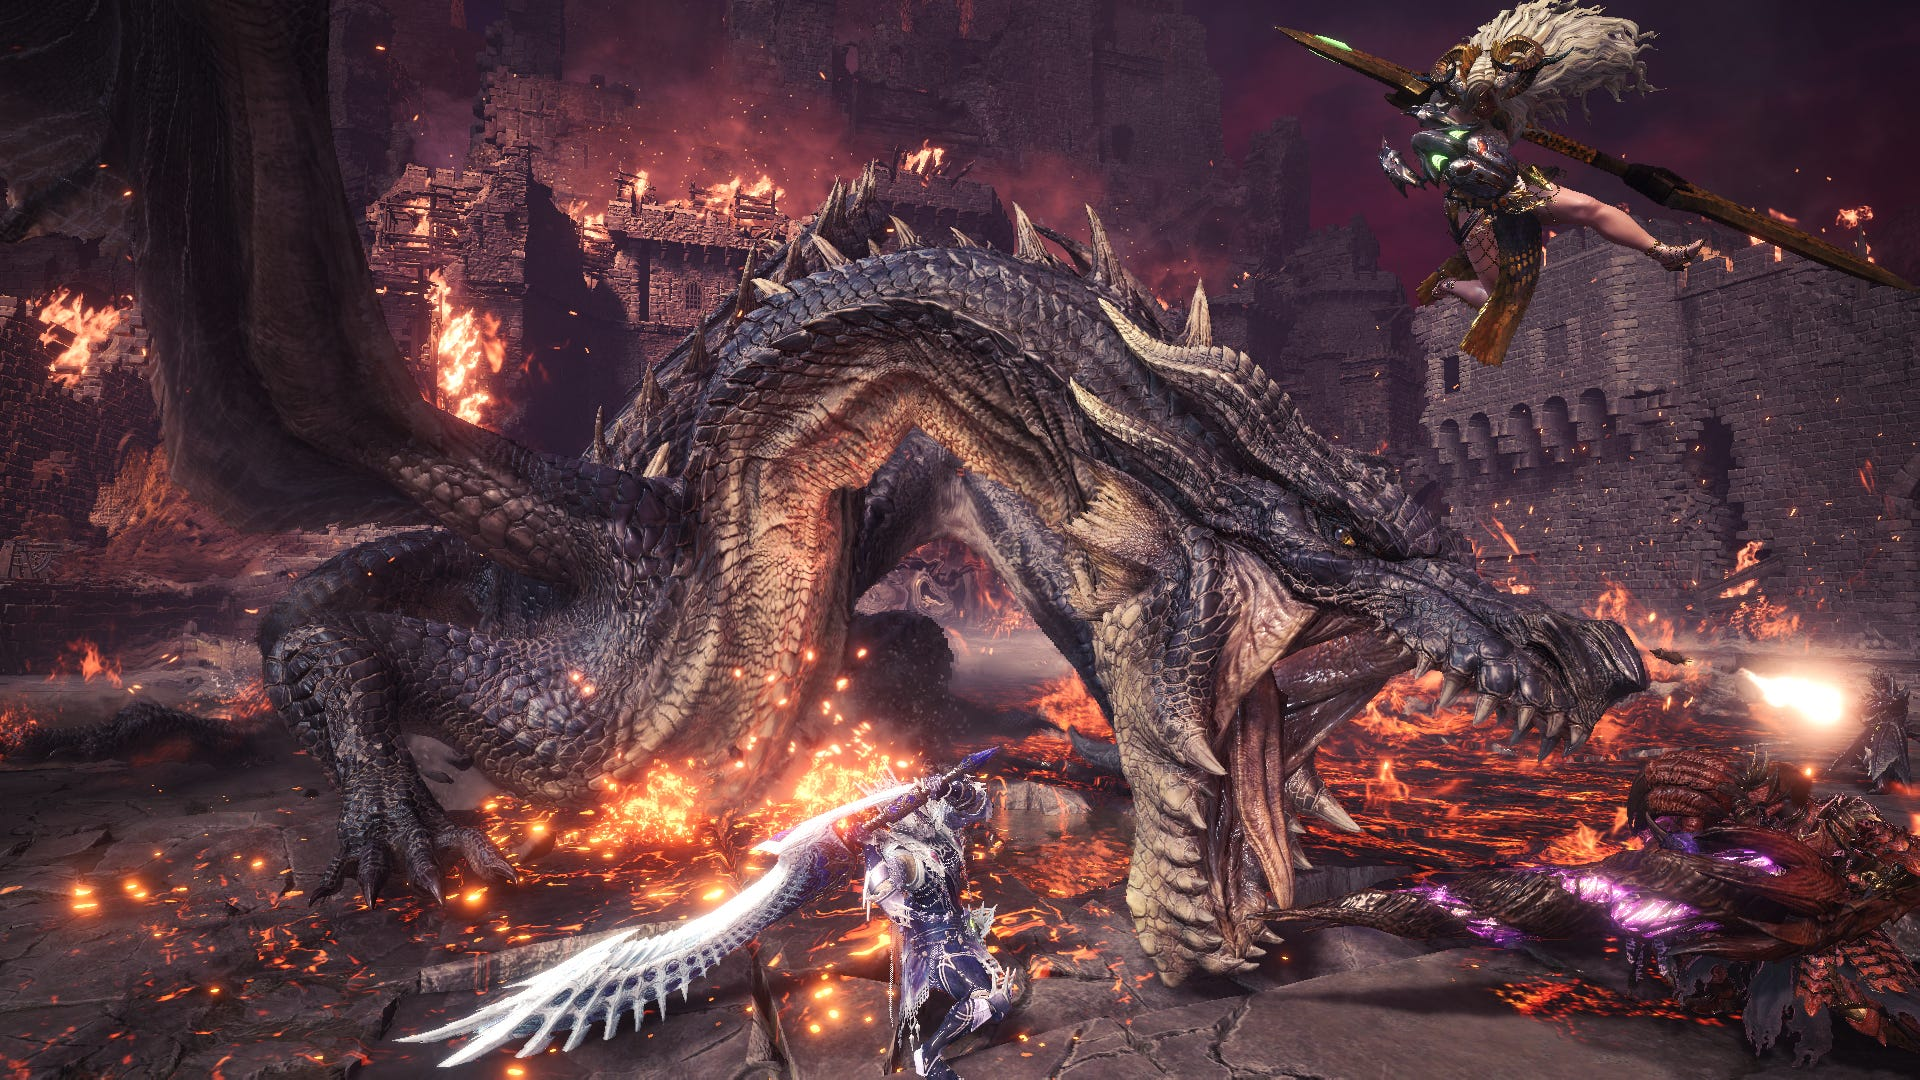 How To Beat Fatalis A Step By Step Guide Monster Hunter World Iceborne This section is for known recipes for the crafting system of the game. monster hunter world iceborne